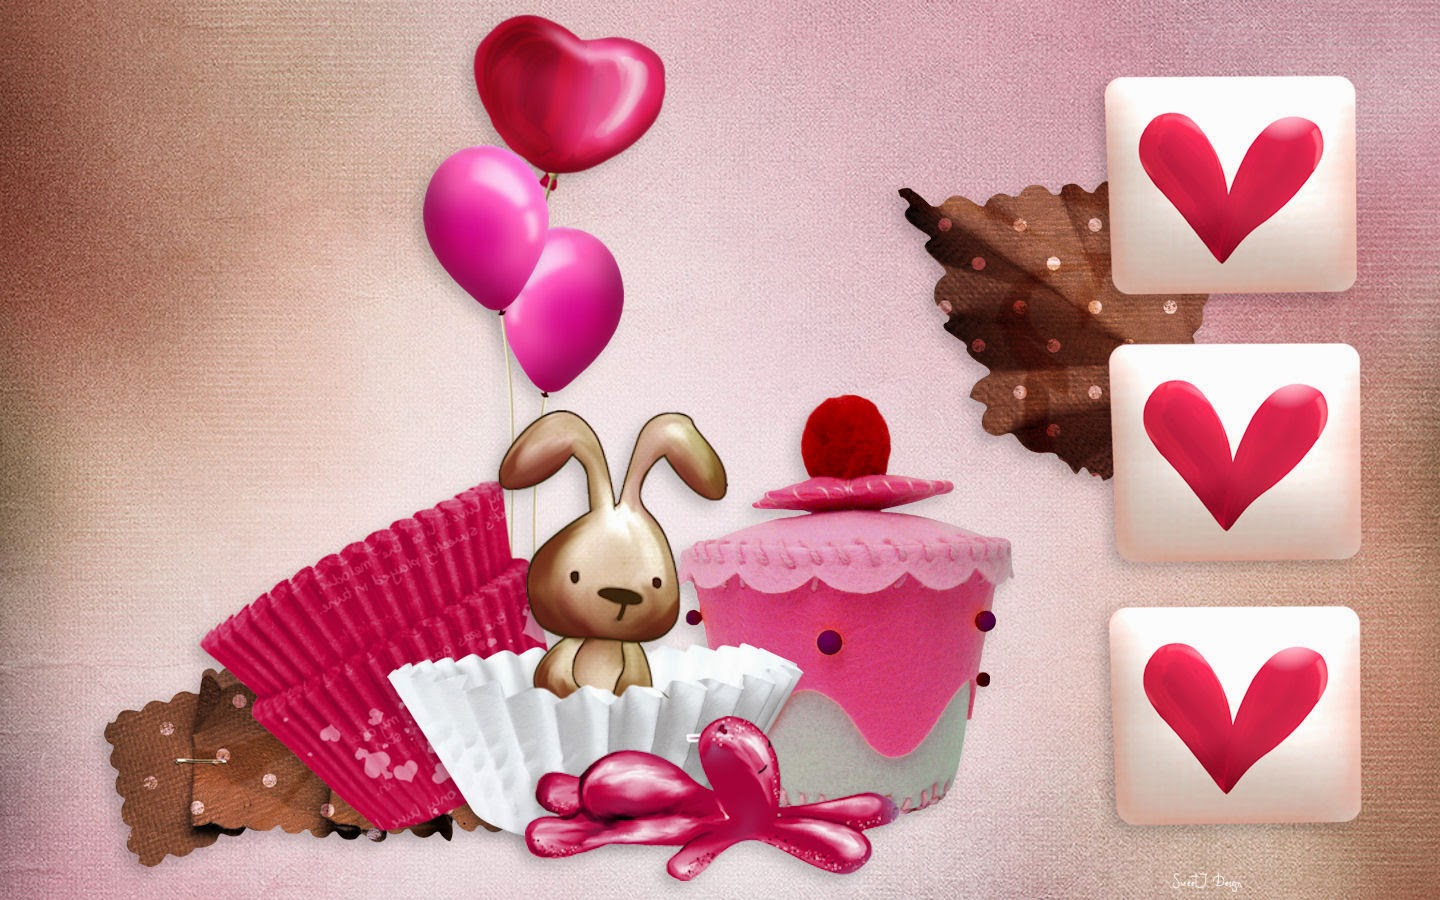 happy birthday wishes card ; Pink-background-Birthday-Bunny-Cupcake-card-for-girls-1440x900-